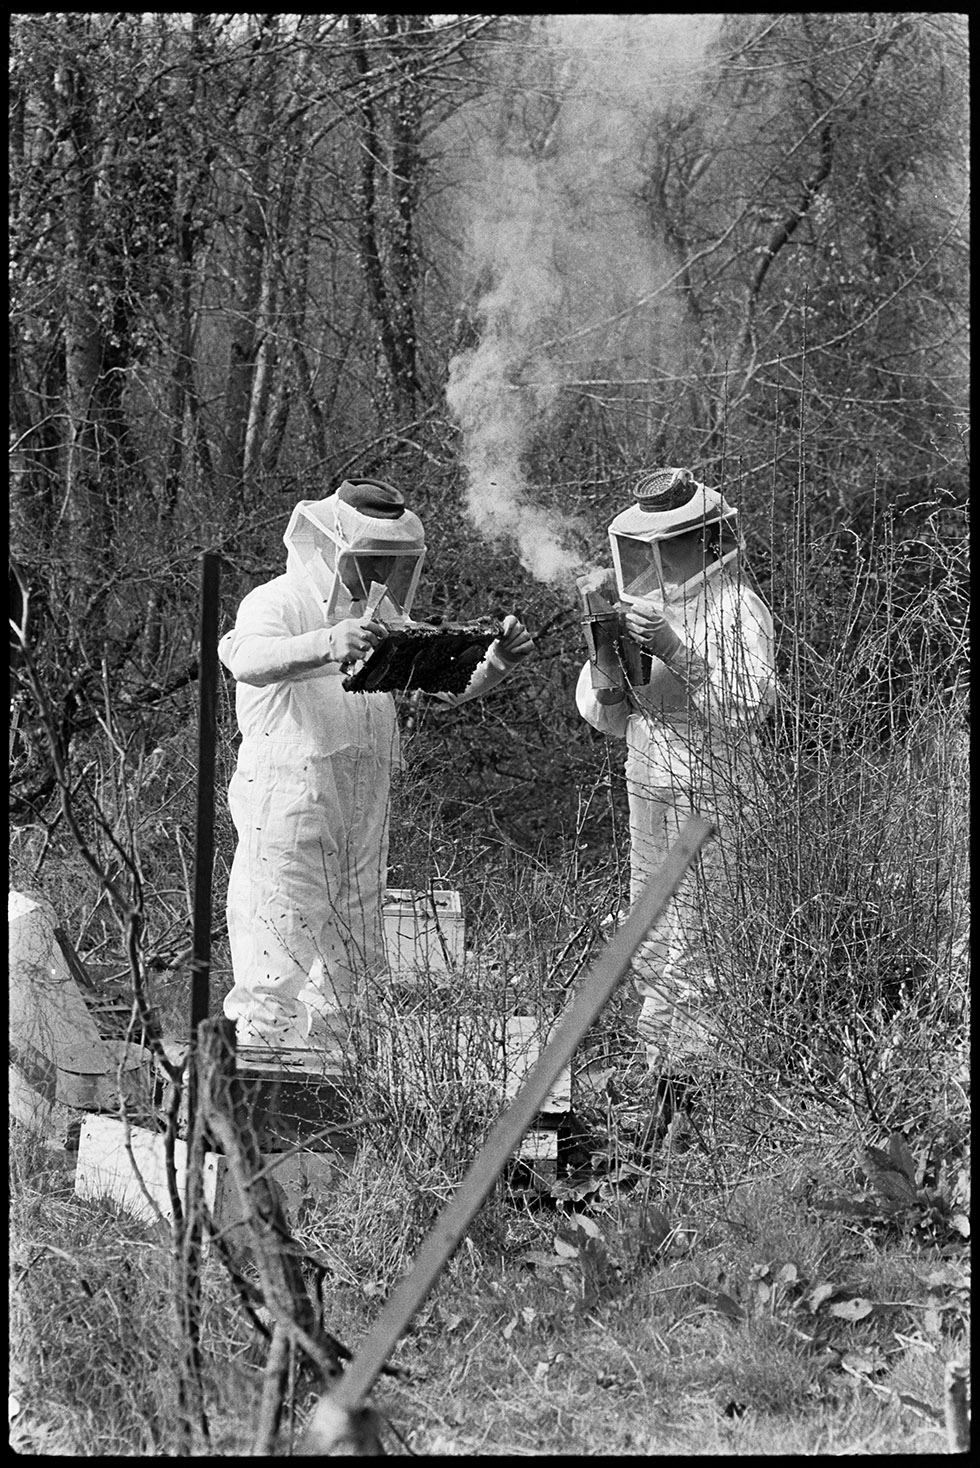 Bee keepers - Rose & Michael Mitchell, Dolton, Addisford, April 1974.